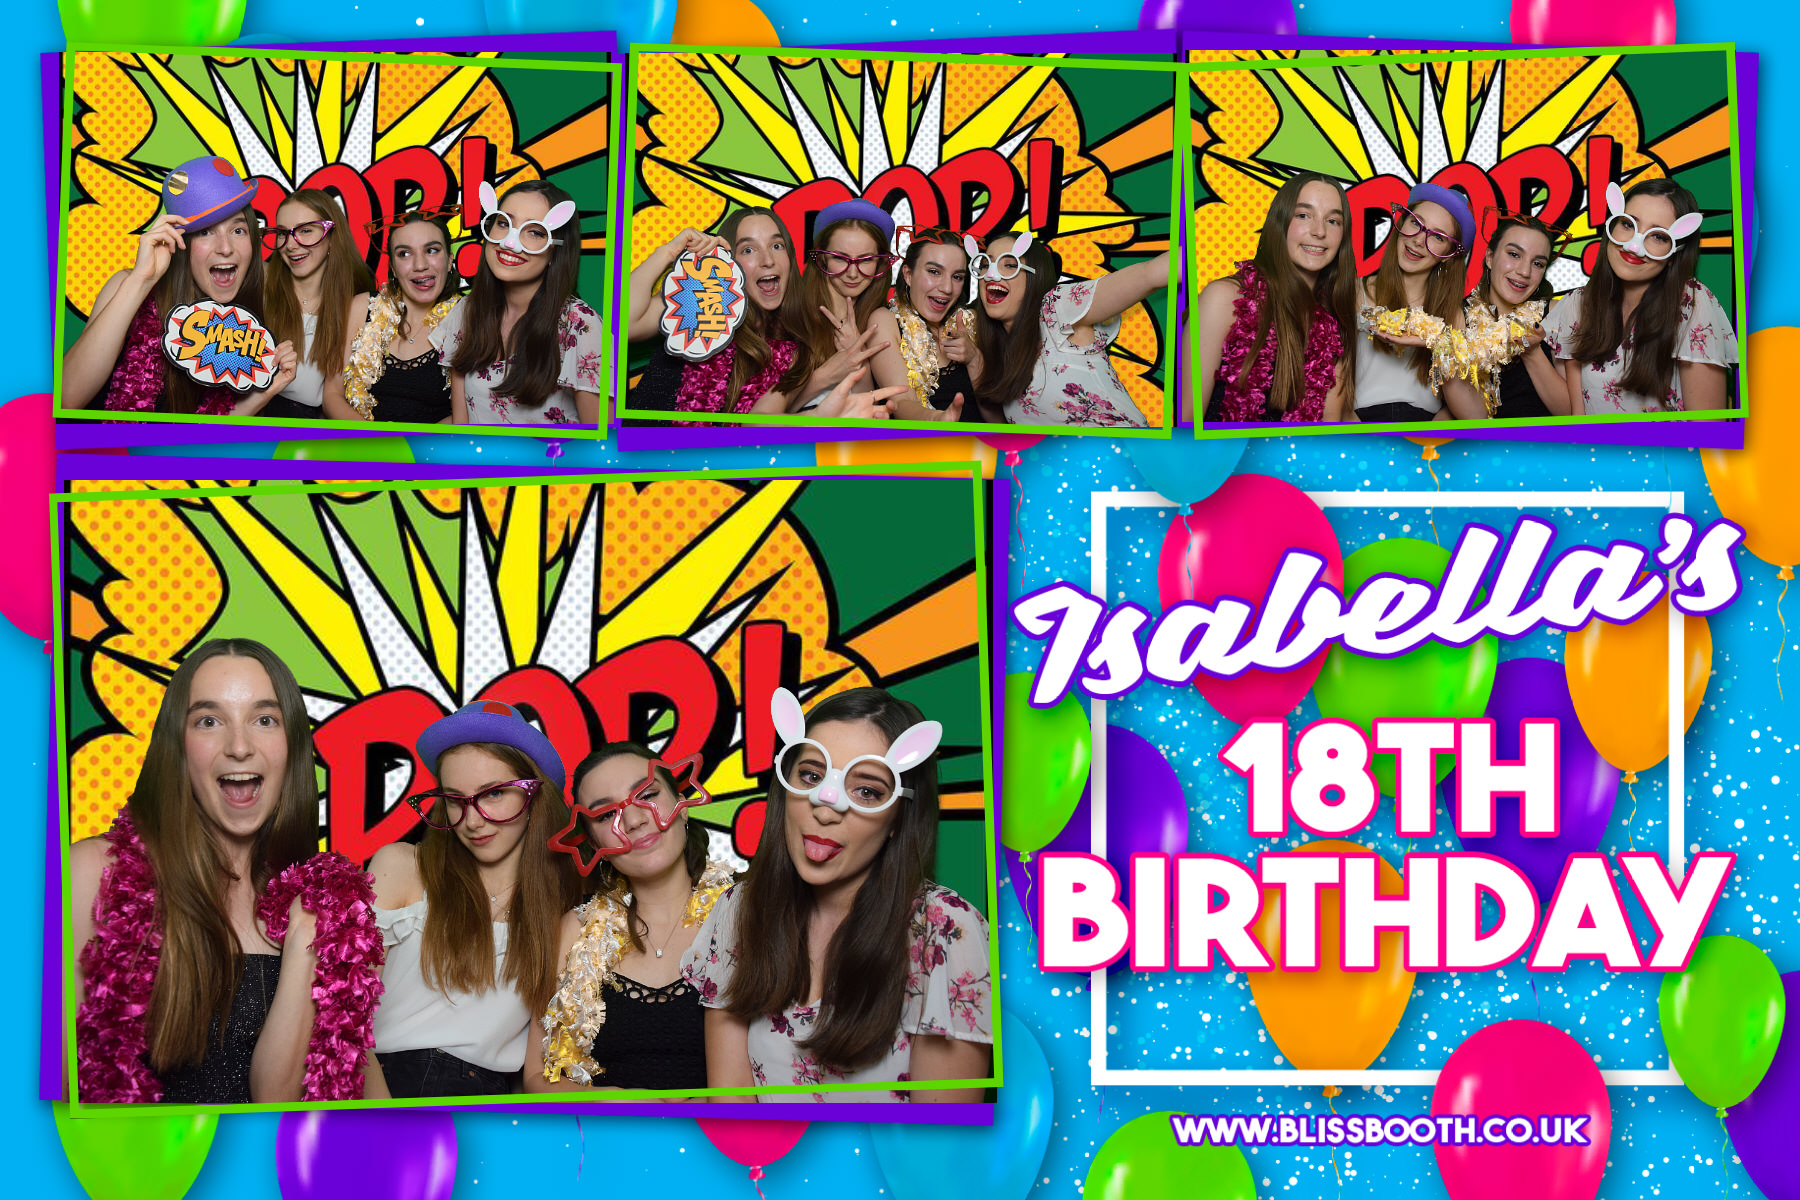 photo booth nottinghamshire.jpg